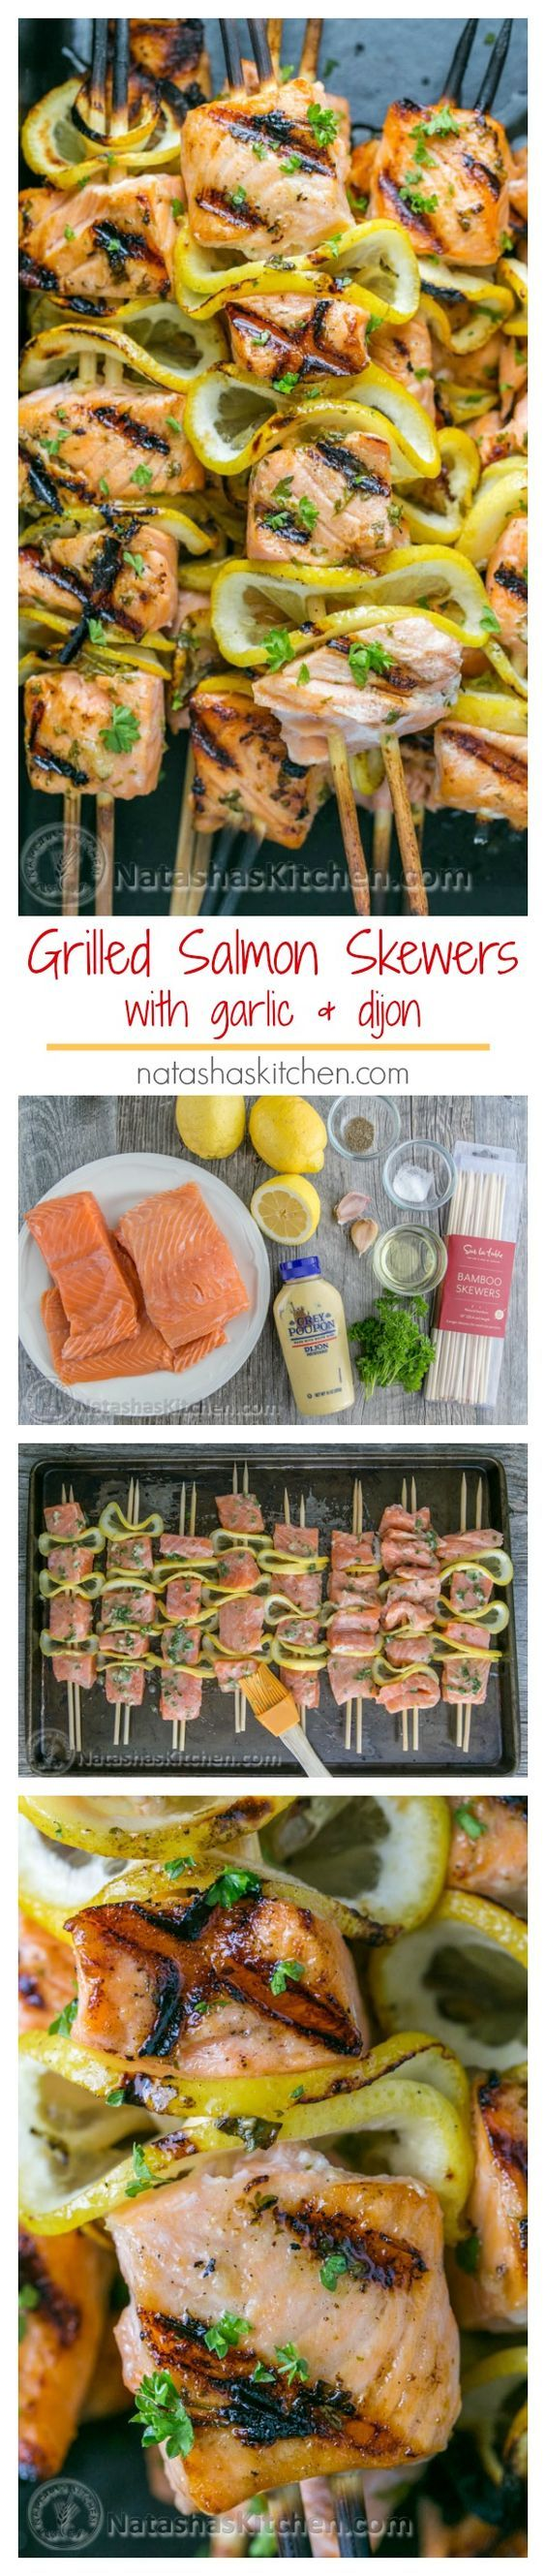 Easy grilled salmon skewers with garlic & dijon. Juicy with incredible flavor & takes less than 30 minutes